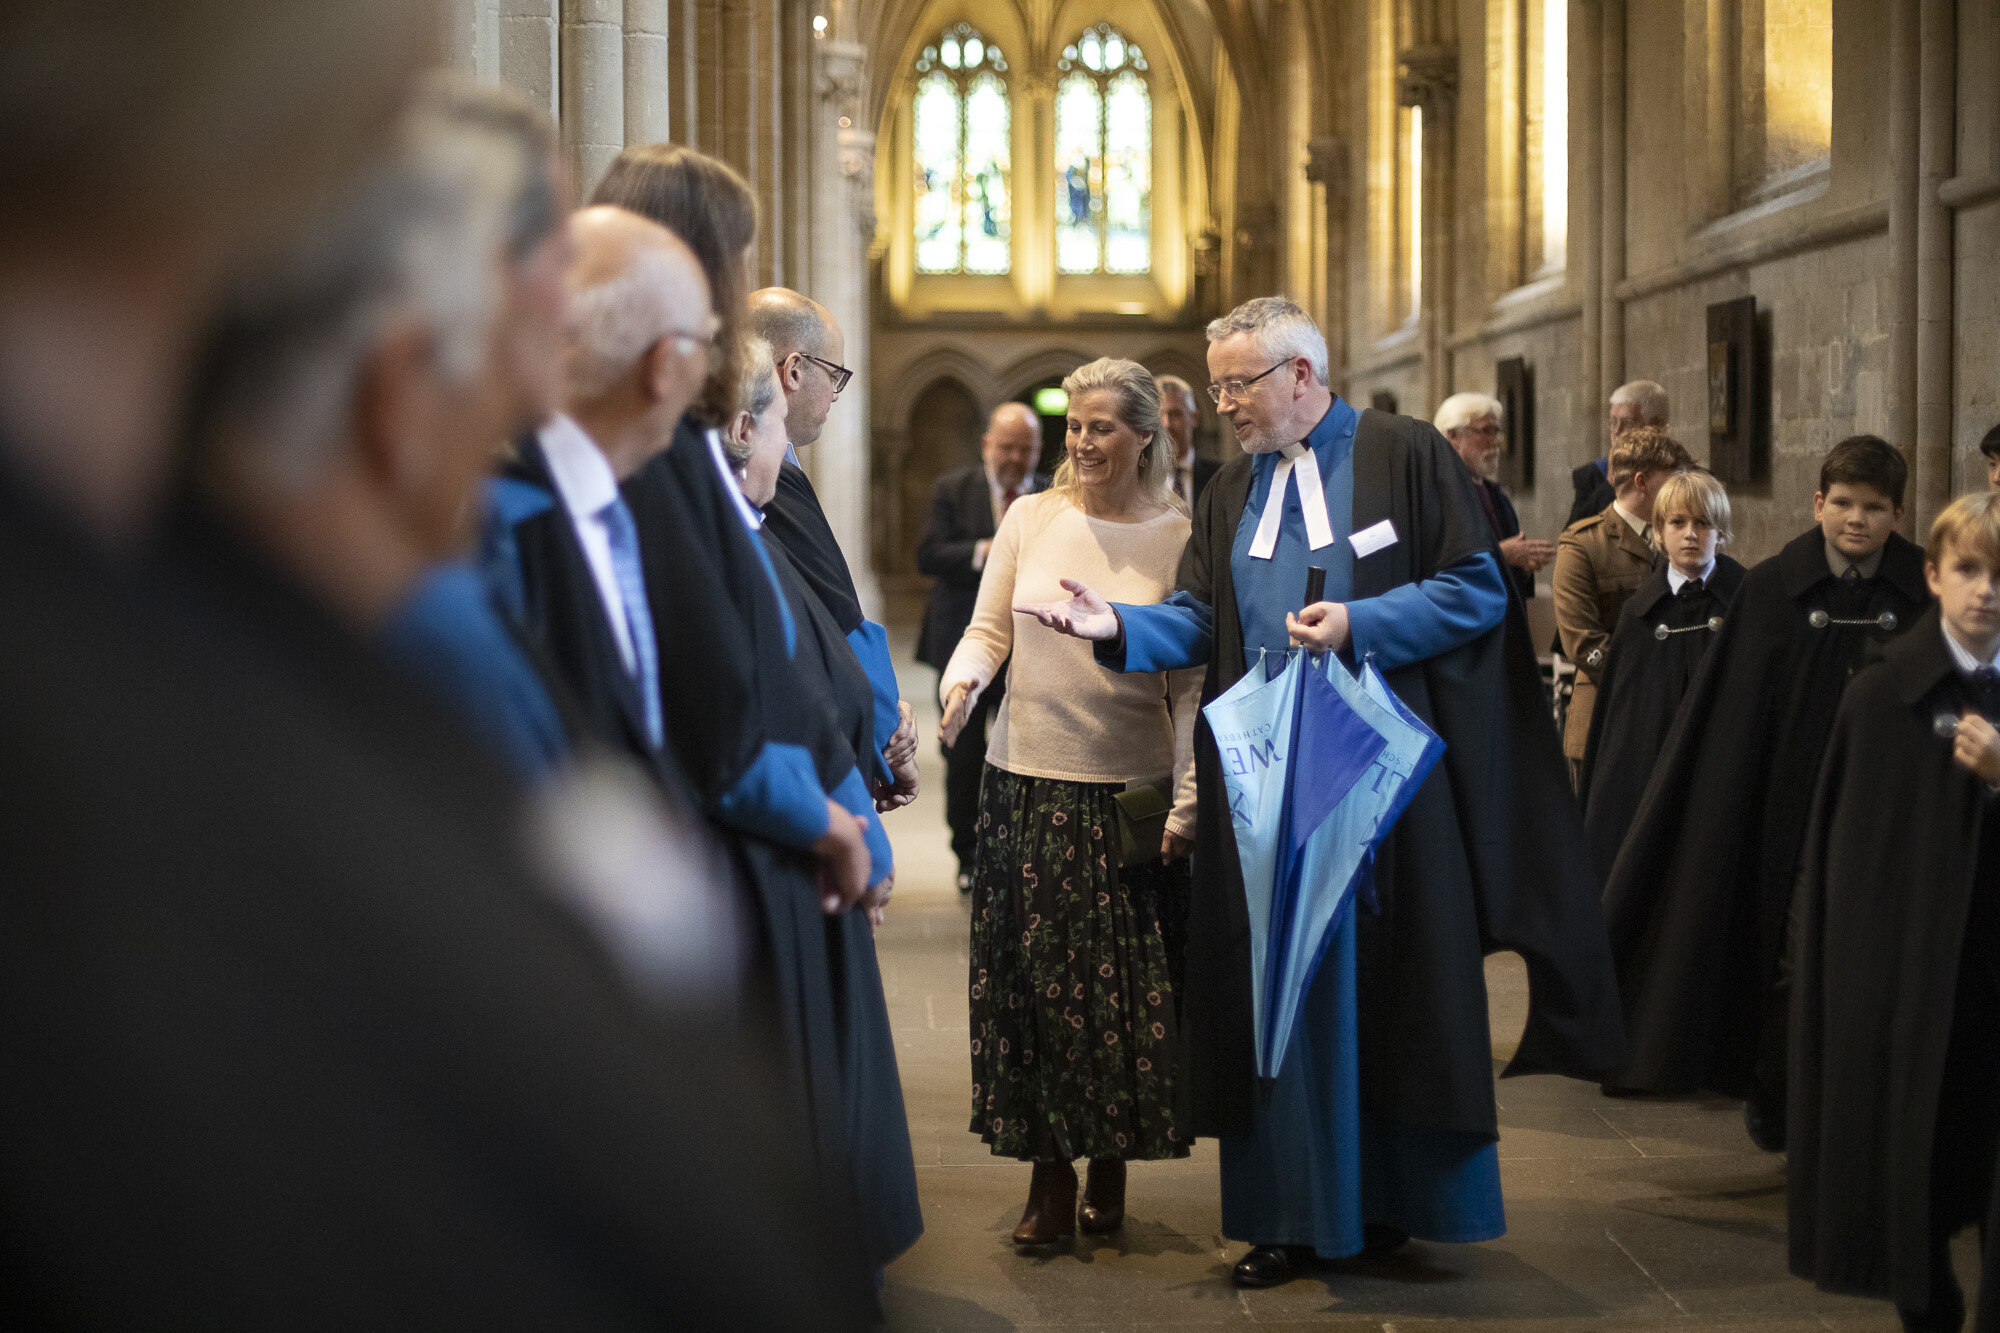 The Countess of Wessex visits Wells Cathedral Chorister Trust - September 2019 12.jpg